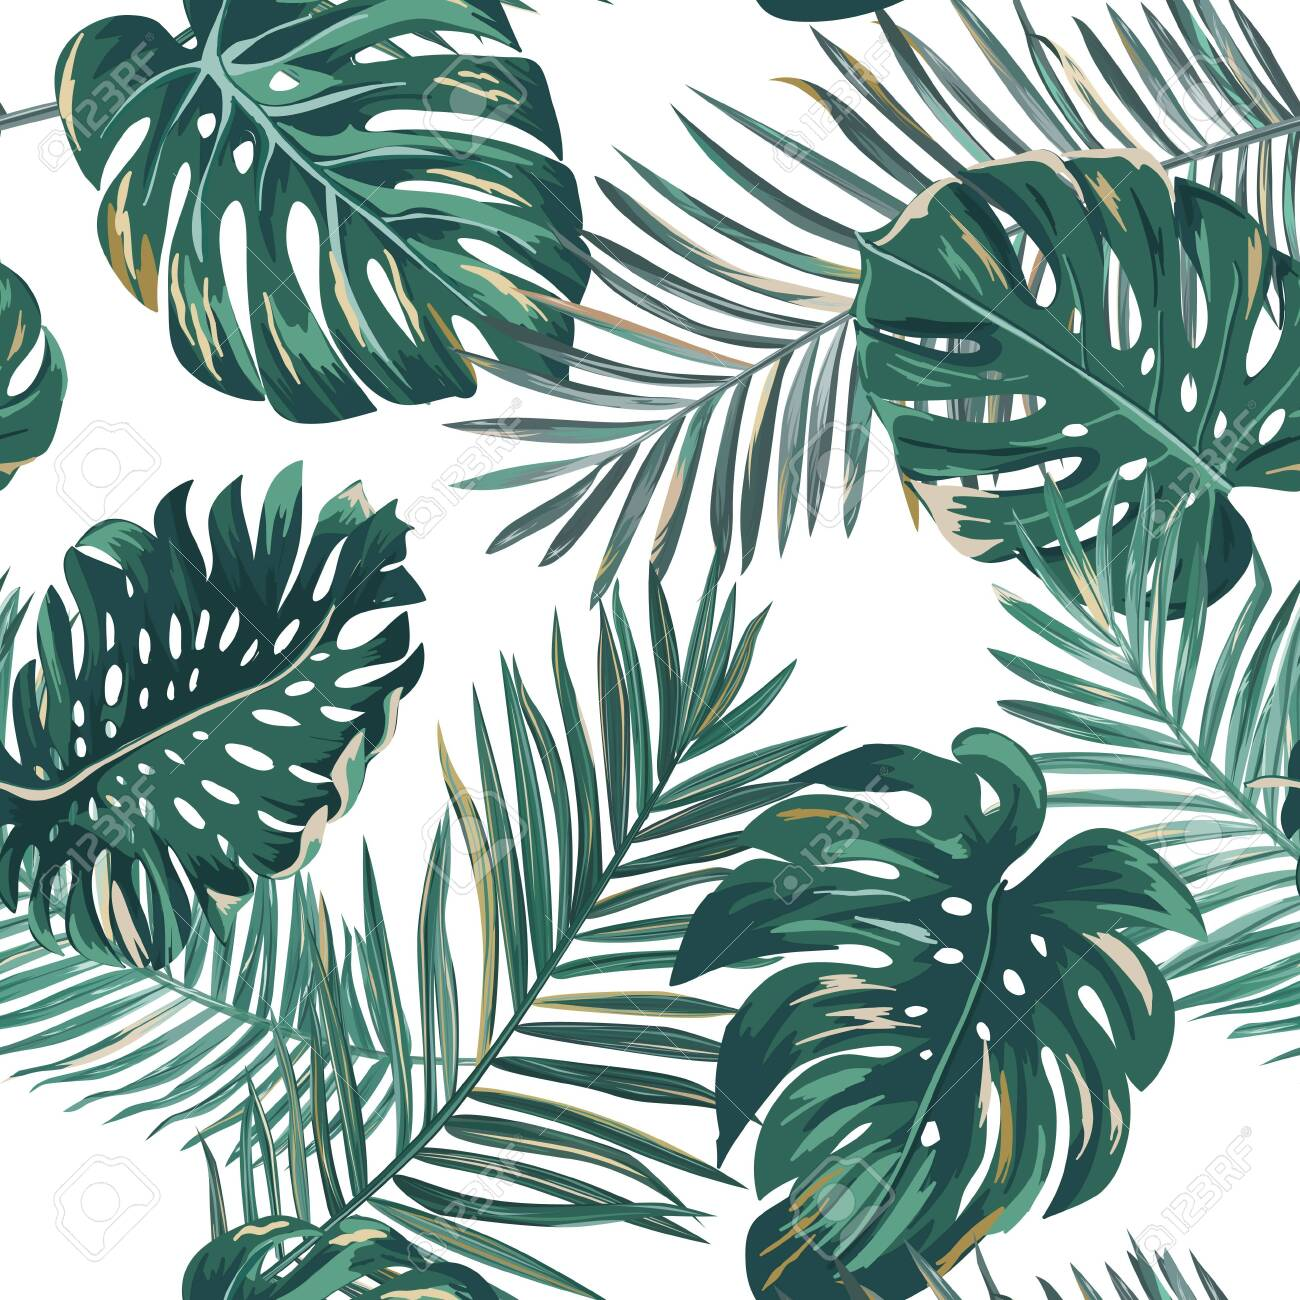 Retro Palm Leaves Background Pattern Tropical Jungle Illustration Royalty Free Cliparts Vectors And Stock Illustration Image 124024487 Limited time sale easy return. retro palm leaves background pattern tropical jungle illustration